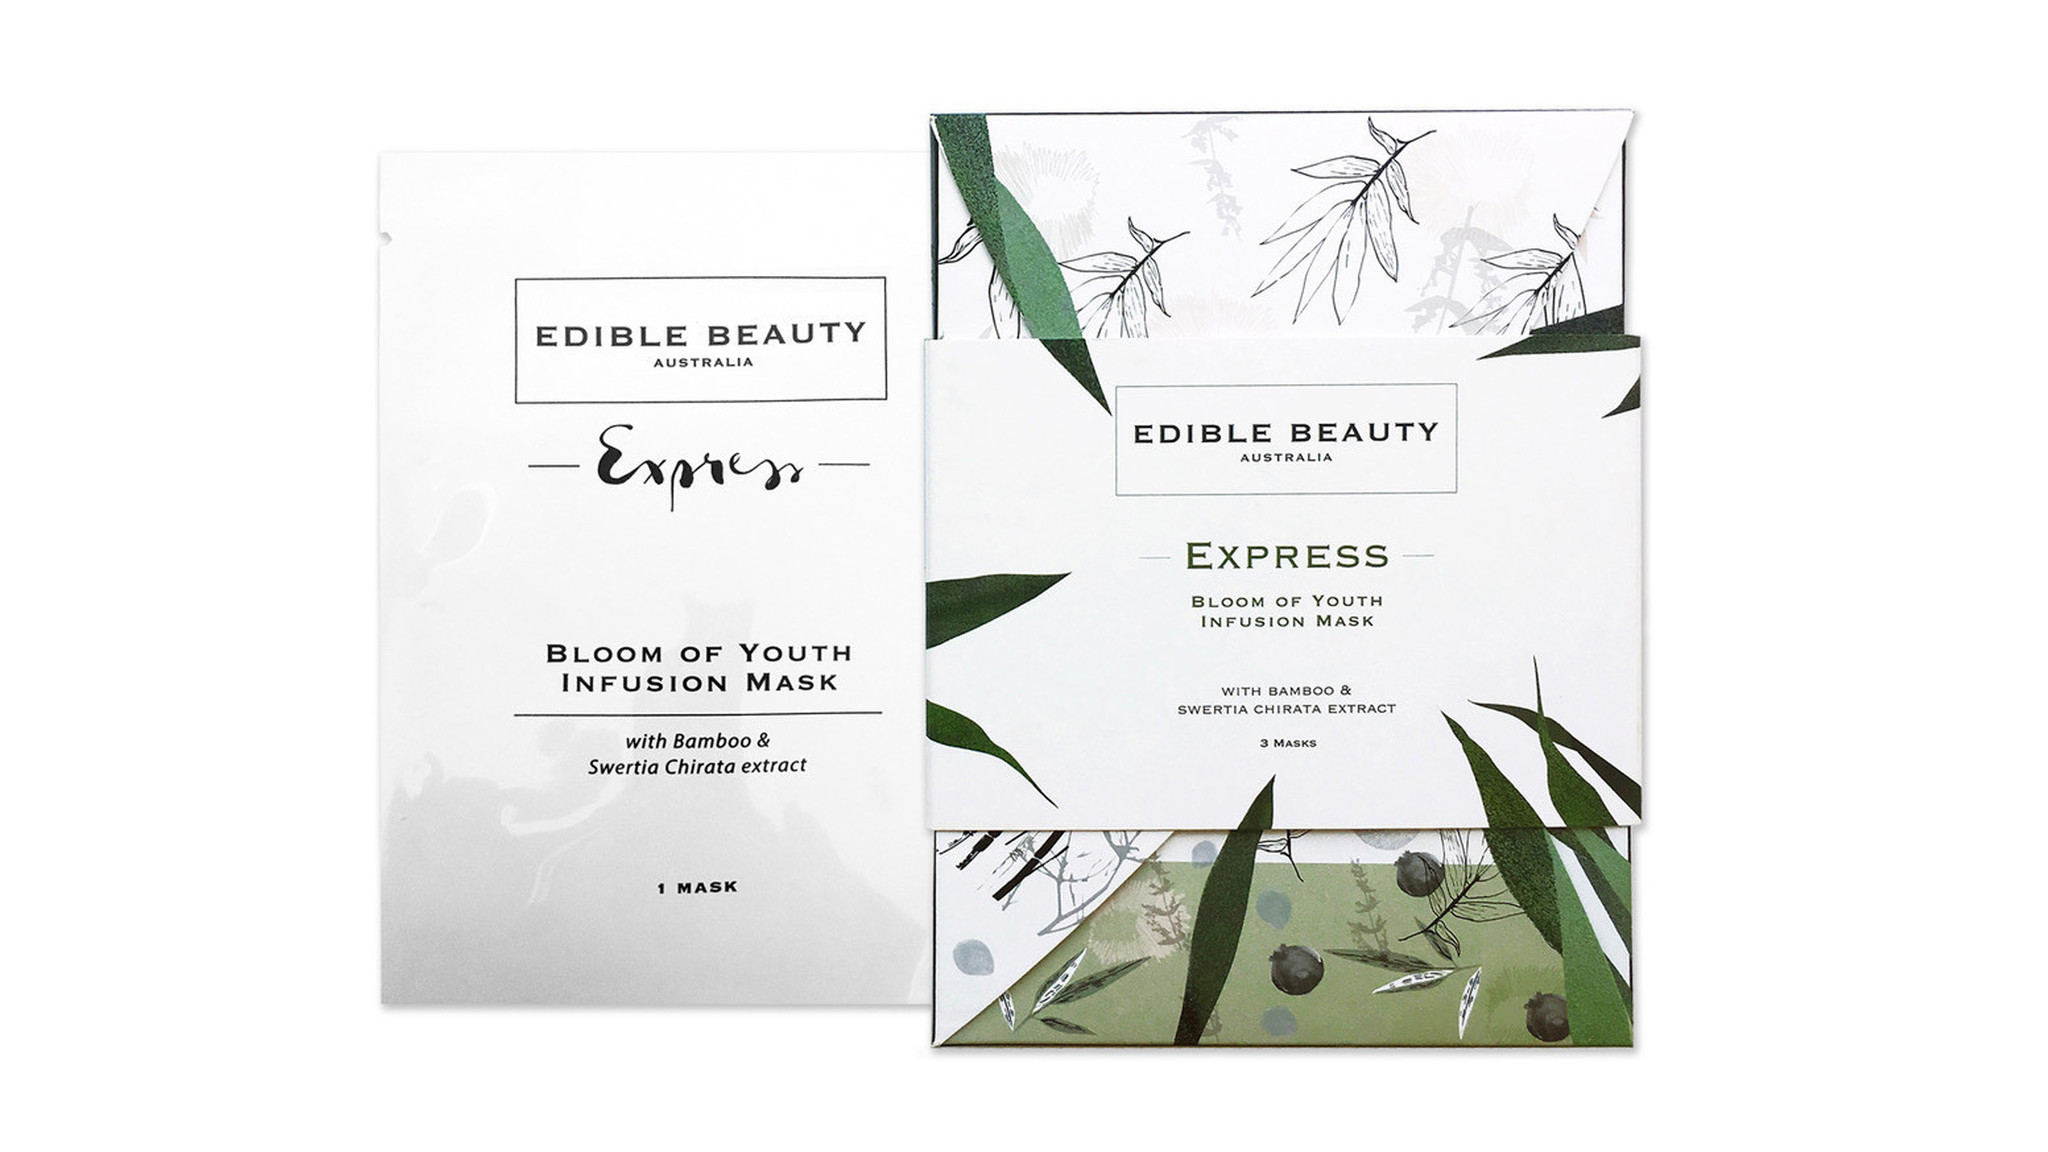 The Australian brand's products are formulated by naturopath and nutritionist Anna Mitsios. Top-sellers include this Bloom of Youth Infusion Mask, $49 for a pack of three, ediblebeautyaustralia.com